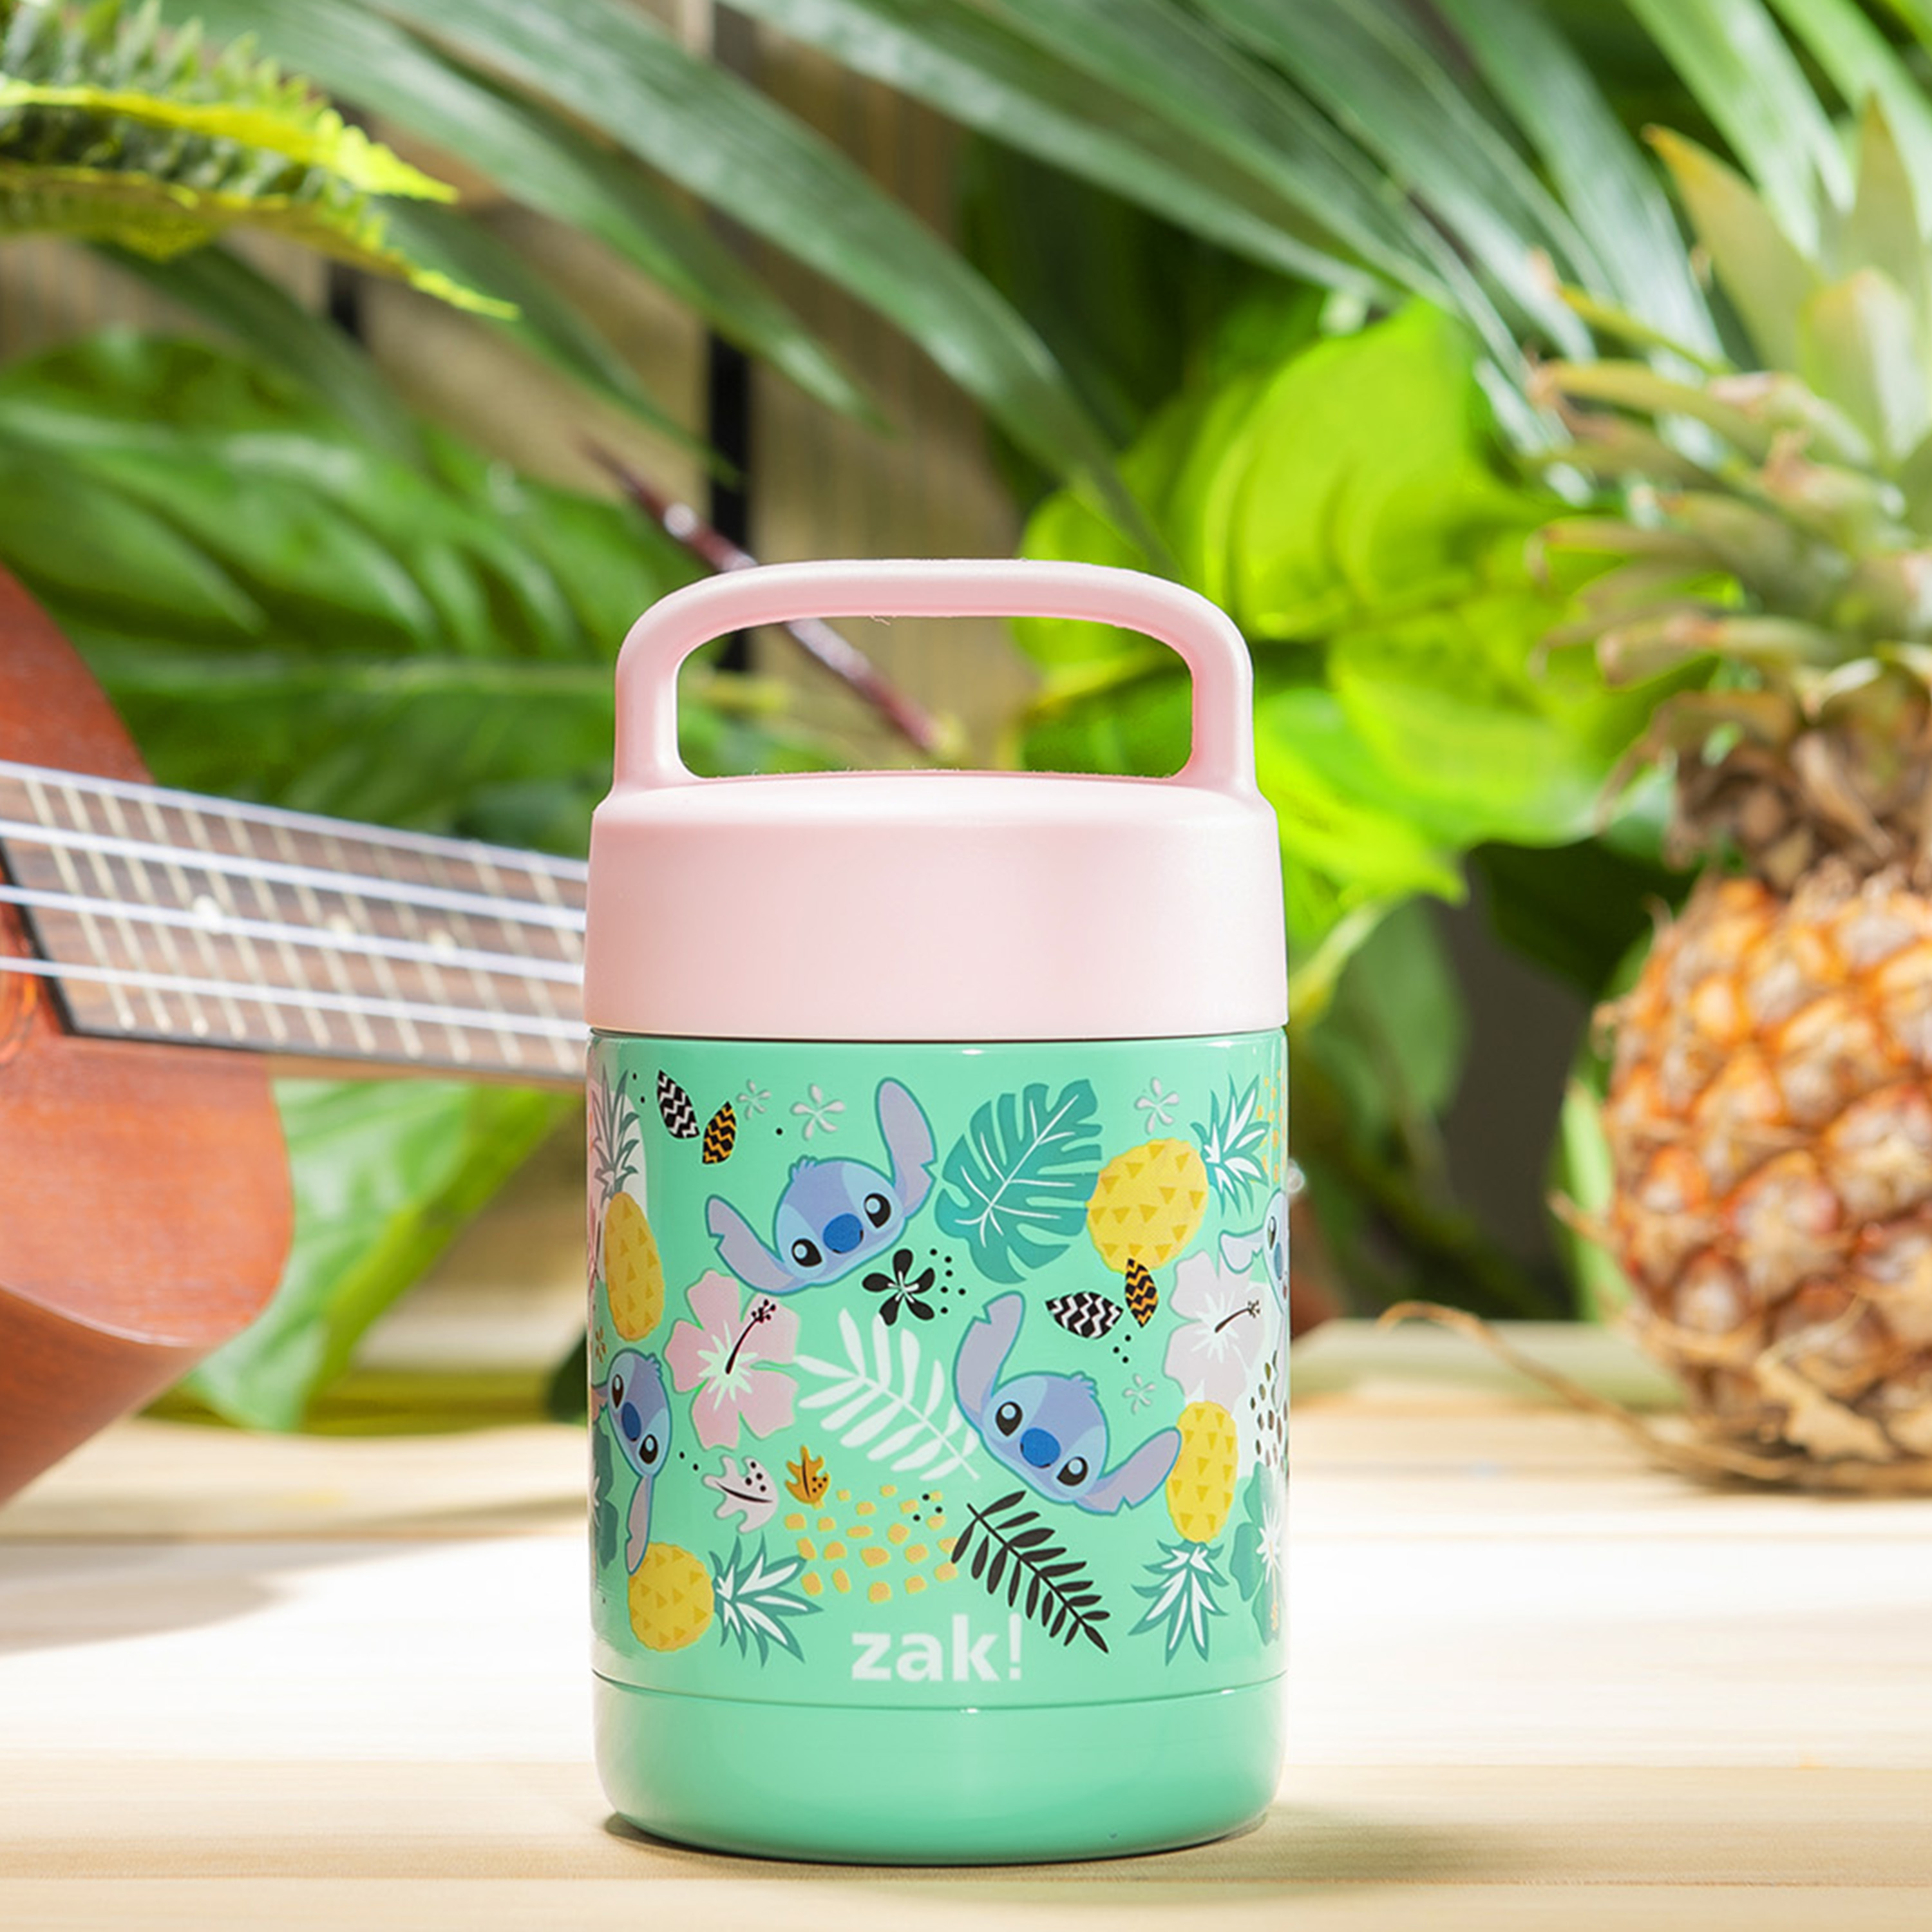 Disney Reusable Vacuum Insulated Stainless Steel Food Container, Lilo & Stitch slideshow image 2